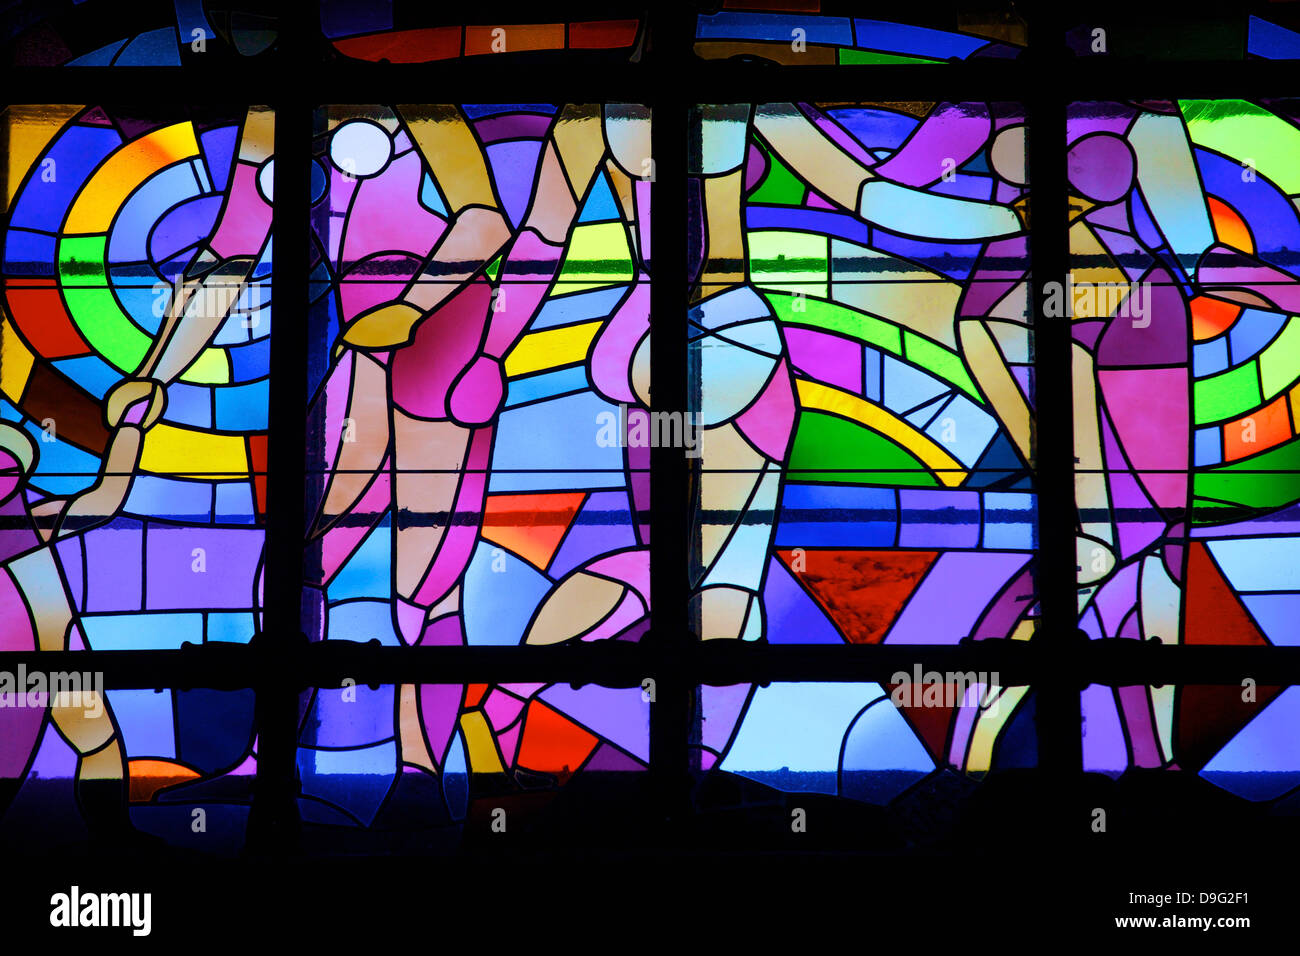 Stained glass window, Gellert Hotel and Spa, Budapest, Hungary - Stock Image